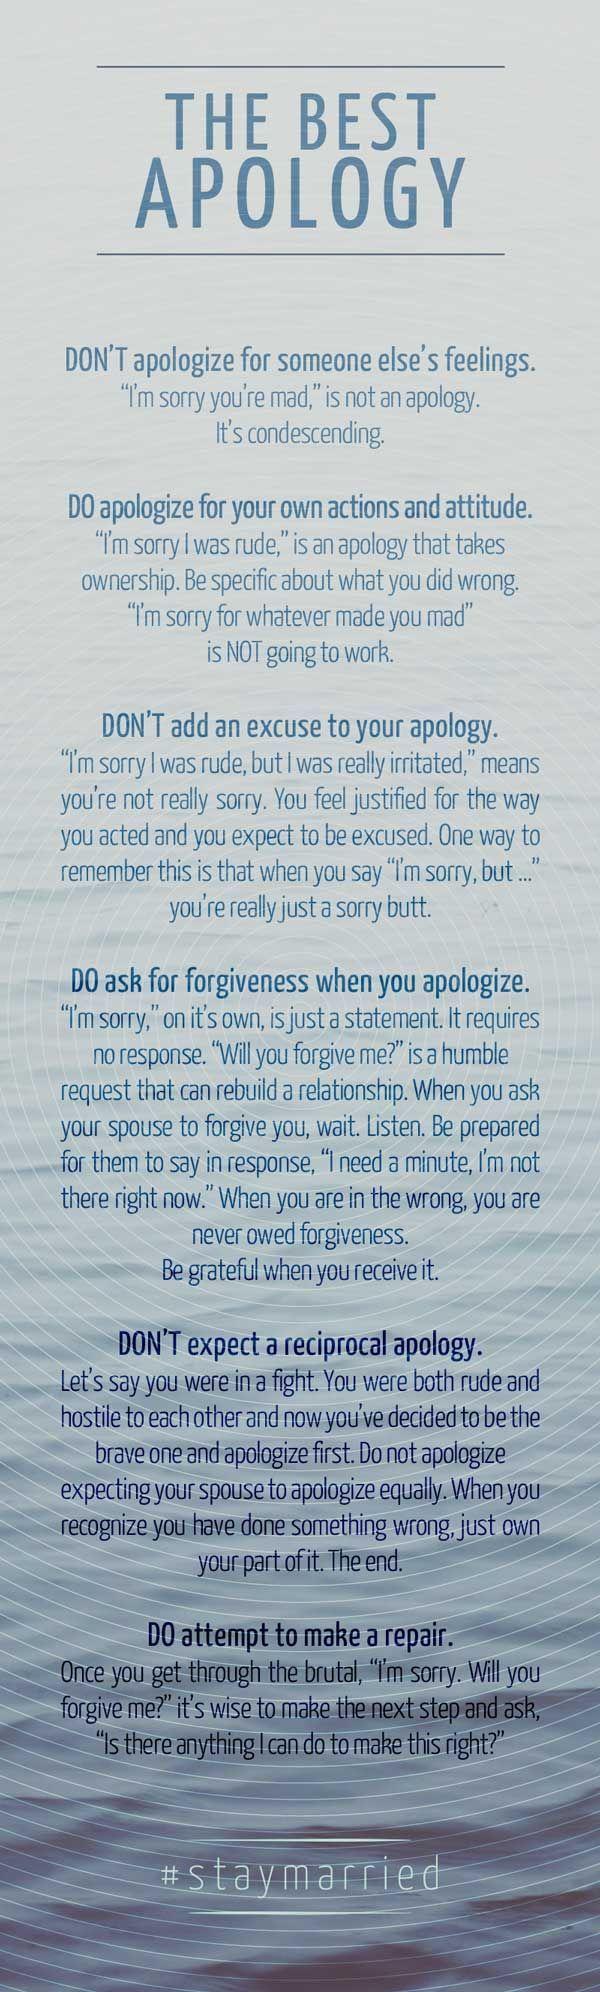 The Best Apology - How to say sorry like you mean it. #staymarried marriage, marriage tips #marriage